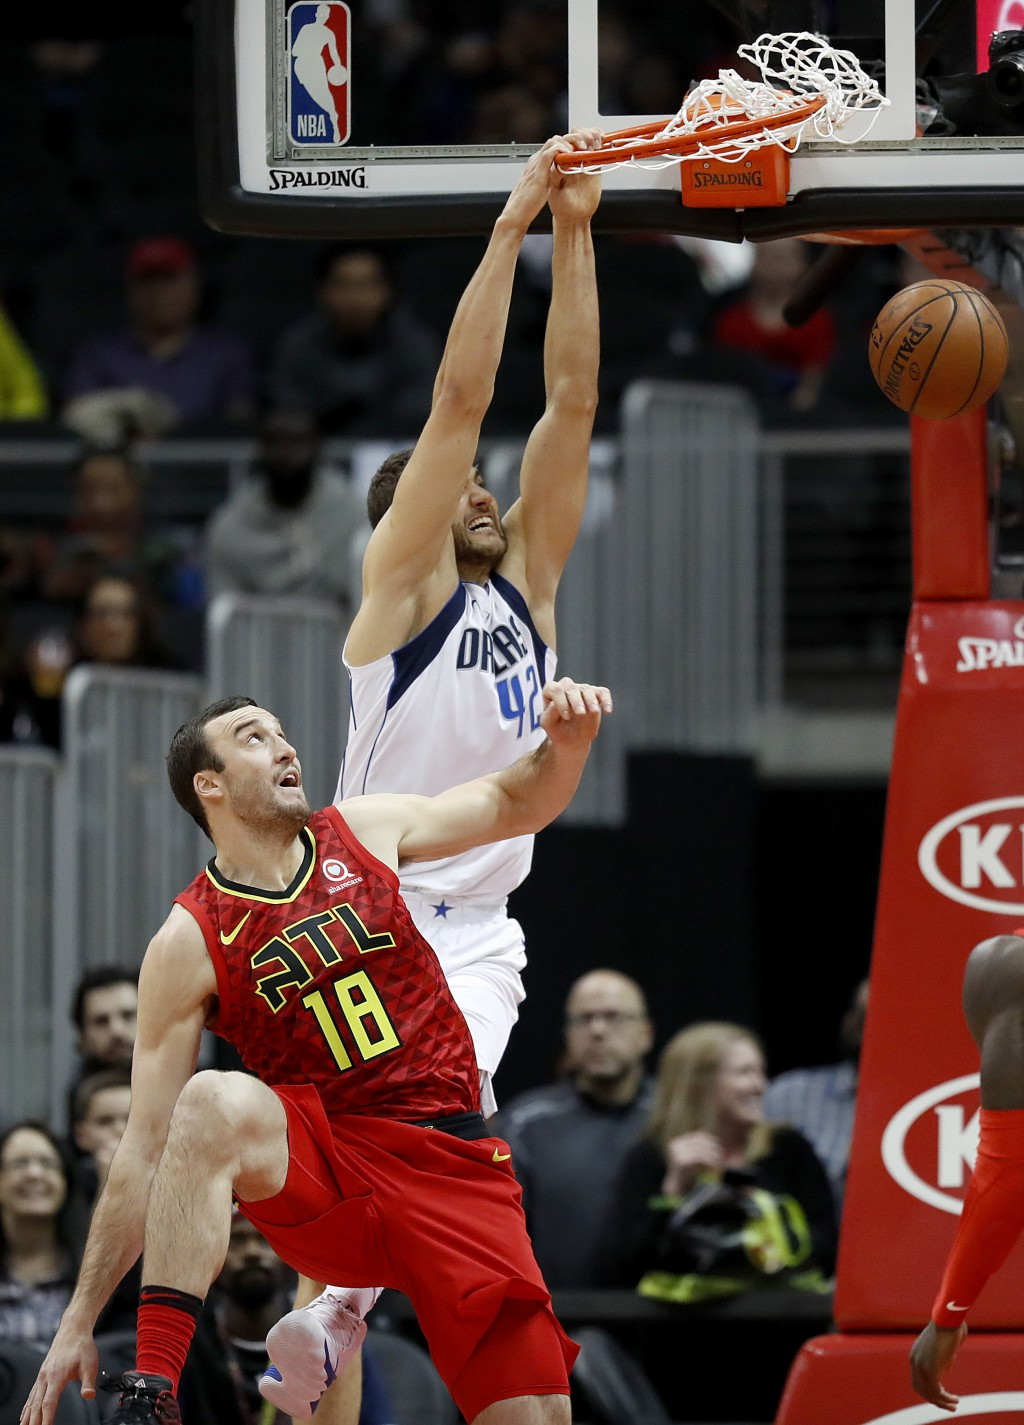 Dallas Mavericks' Maximilian Kleber, right, of Germany, dunks against Atlanta Hawks' Miles Plumlee in the first quarter of an NBA basketball game in A...